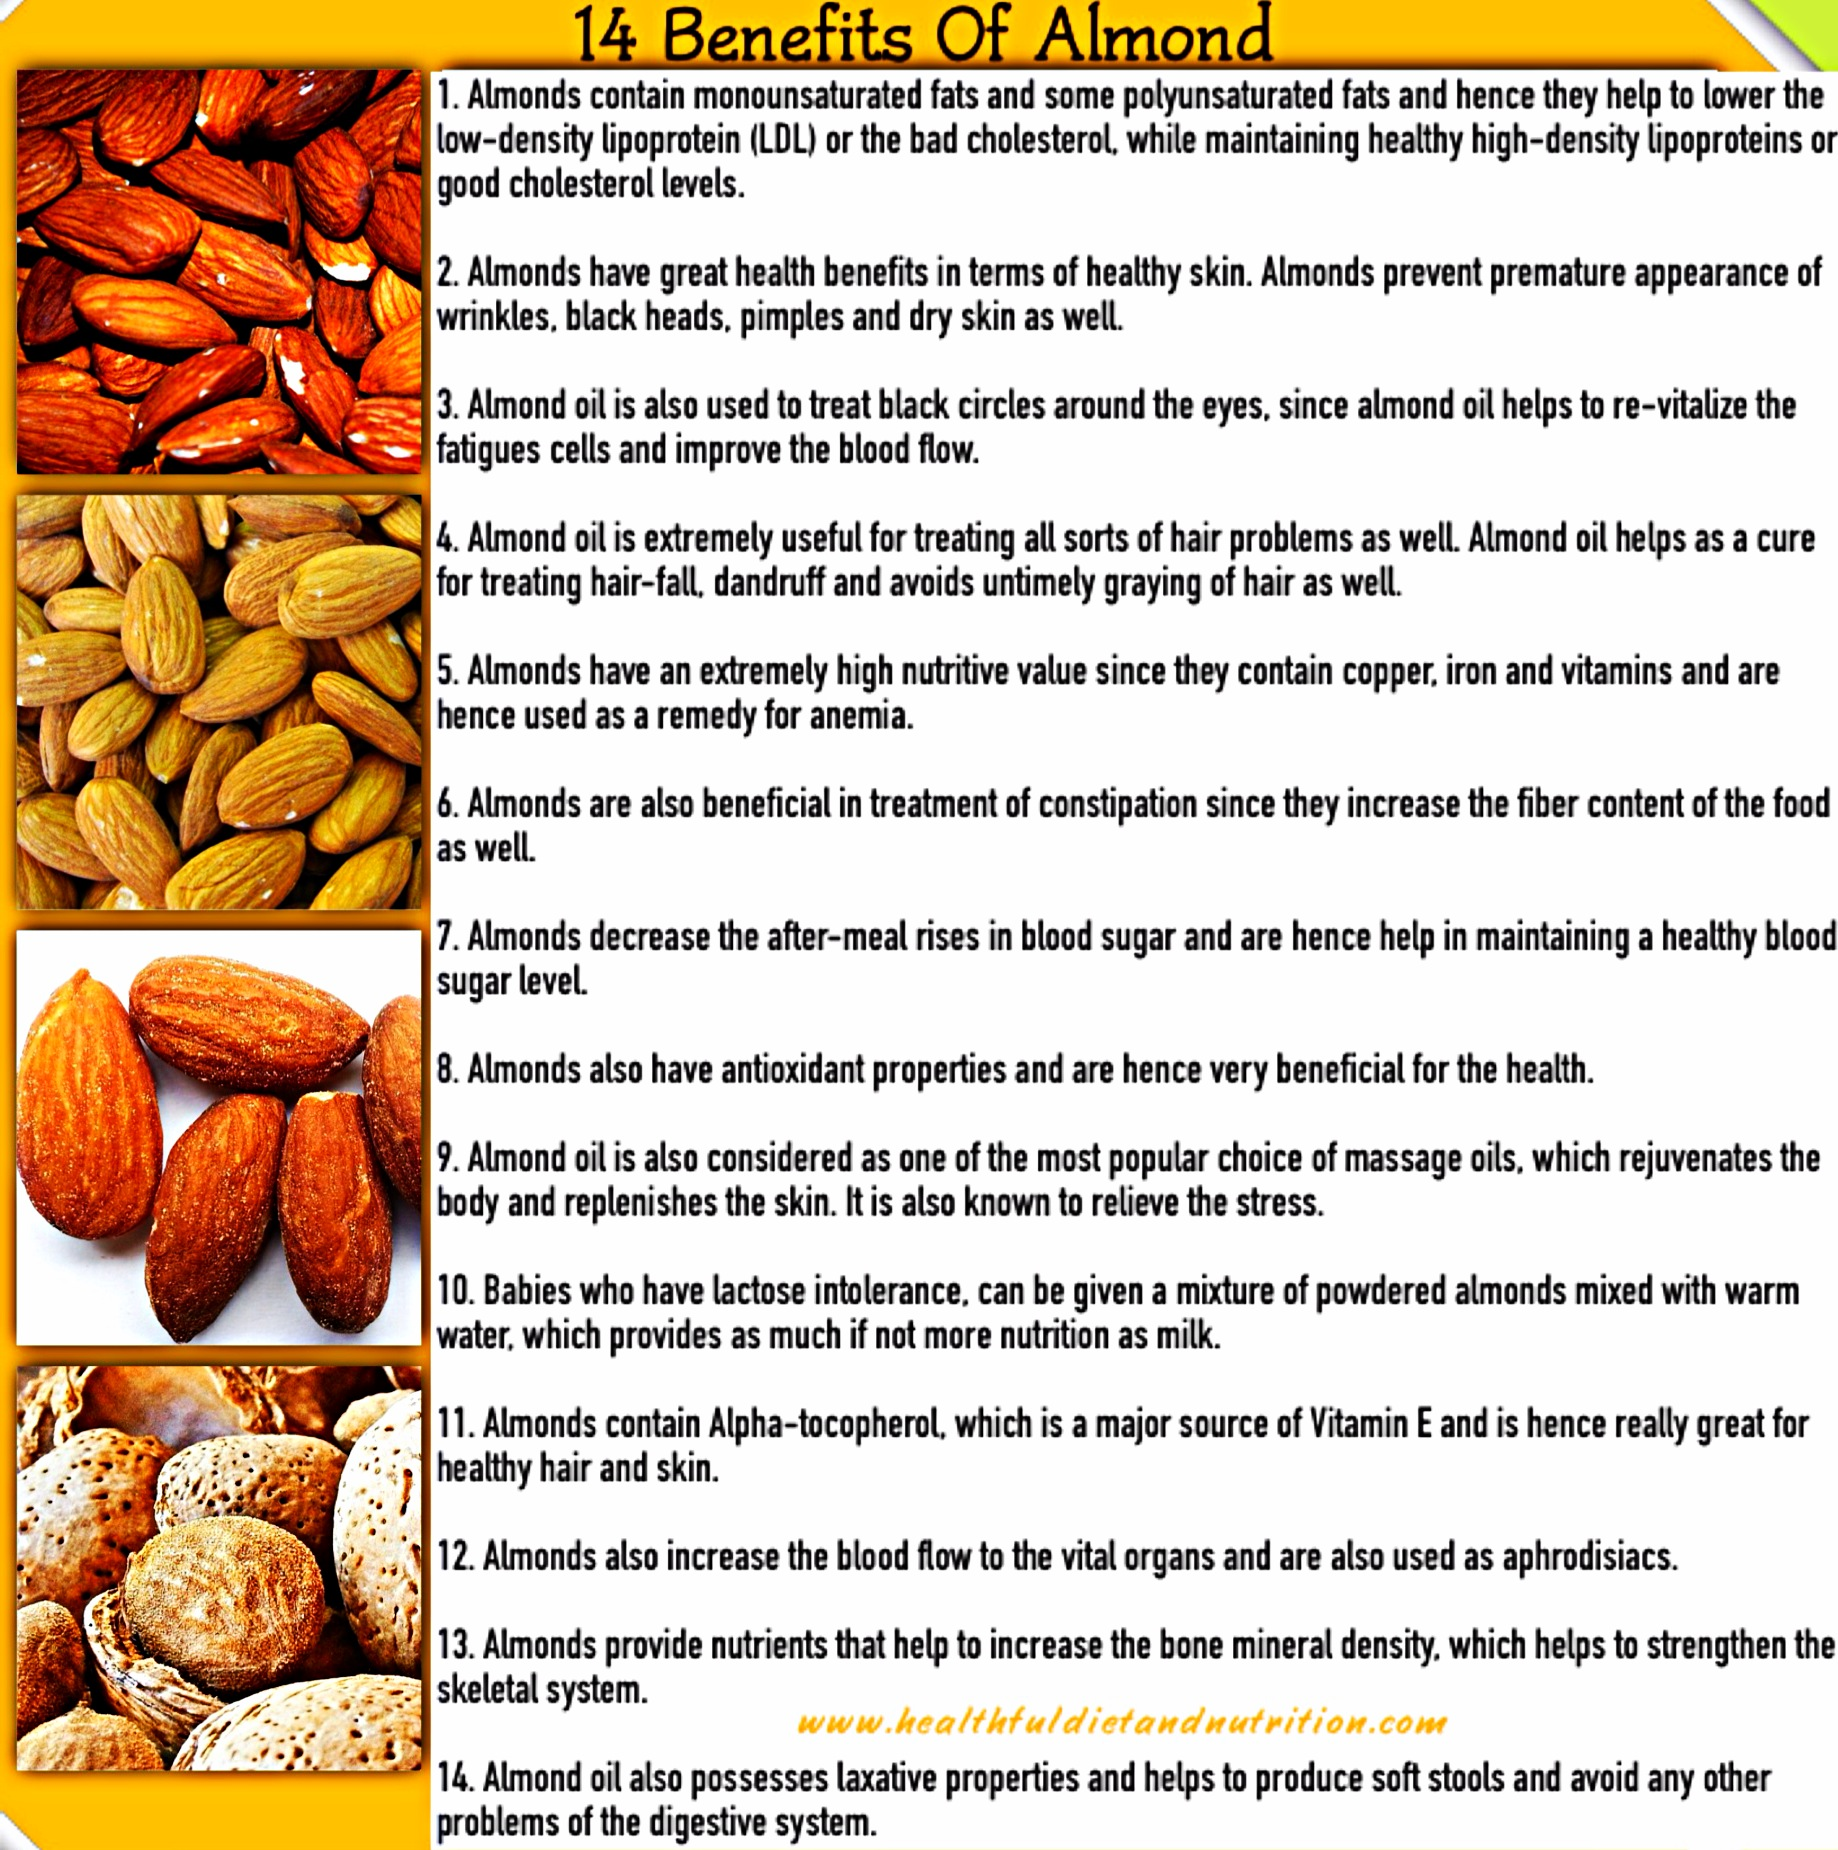 14 Health Benefits of Almond